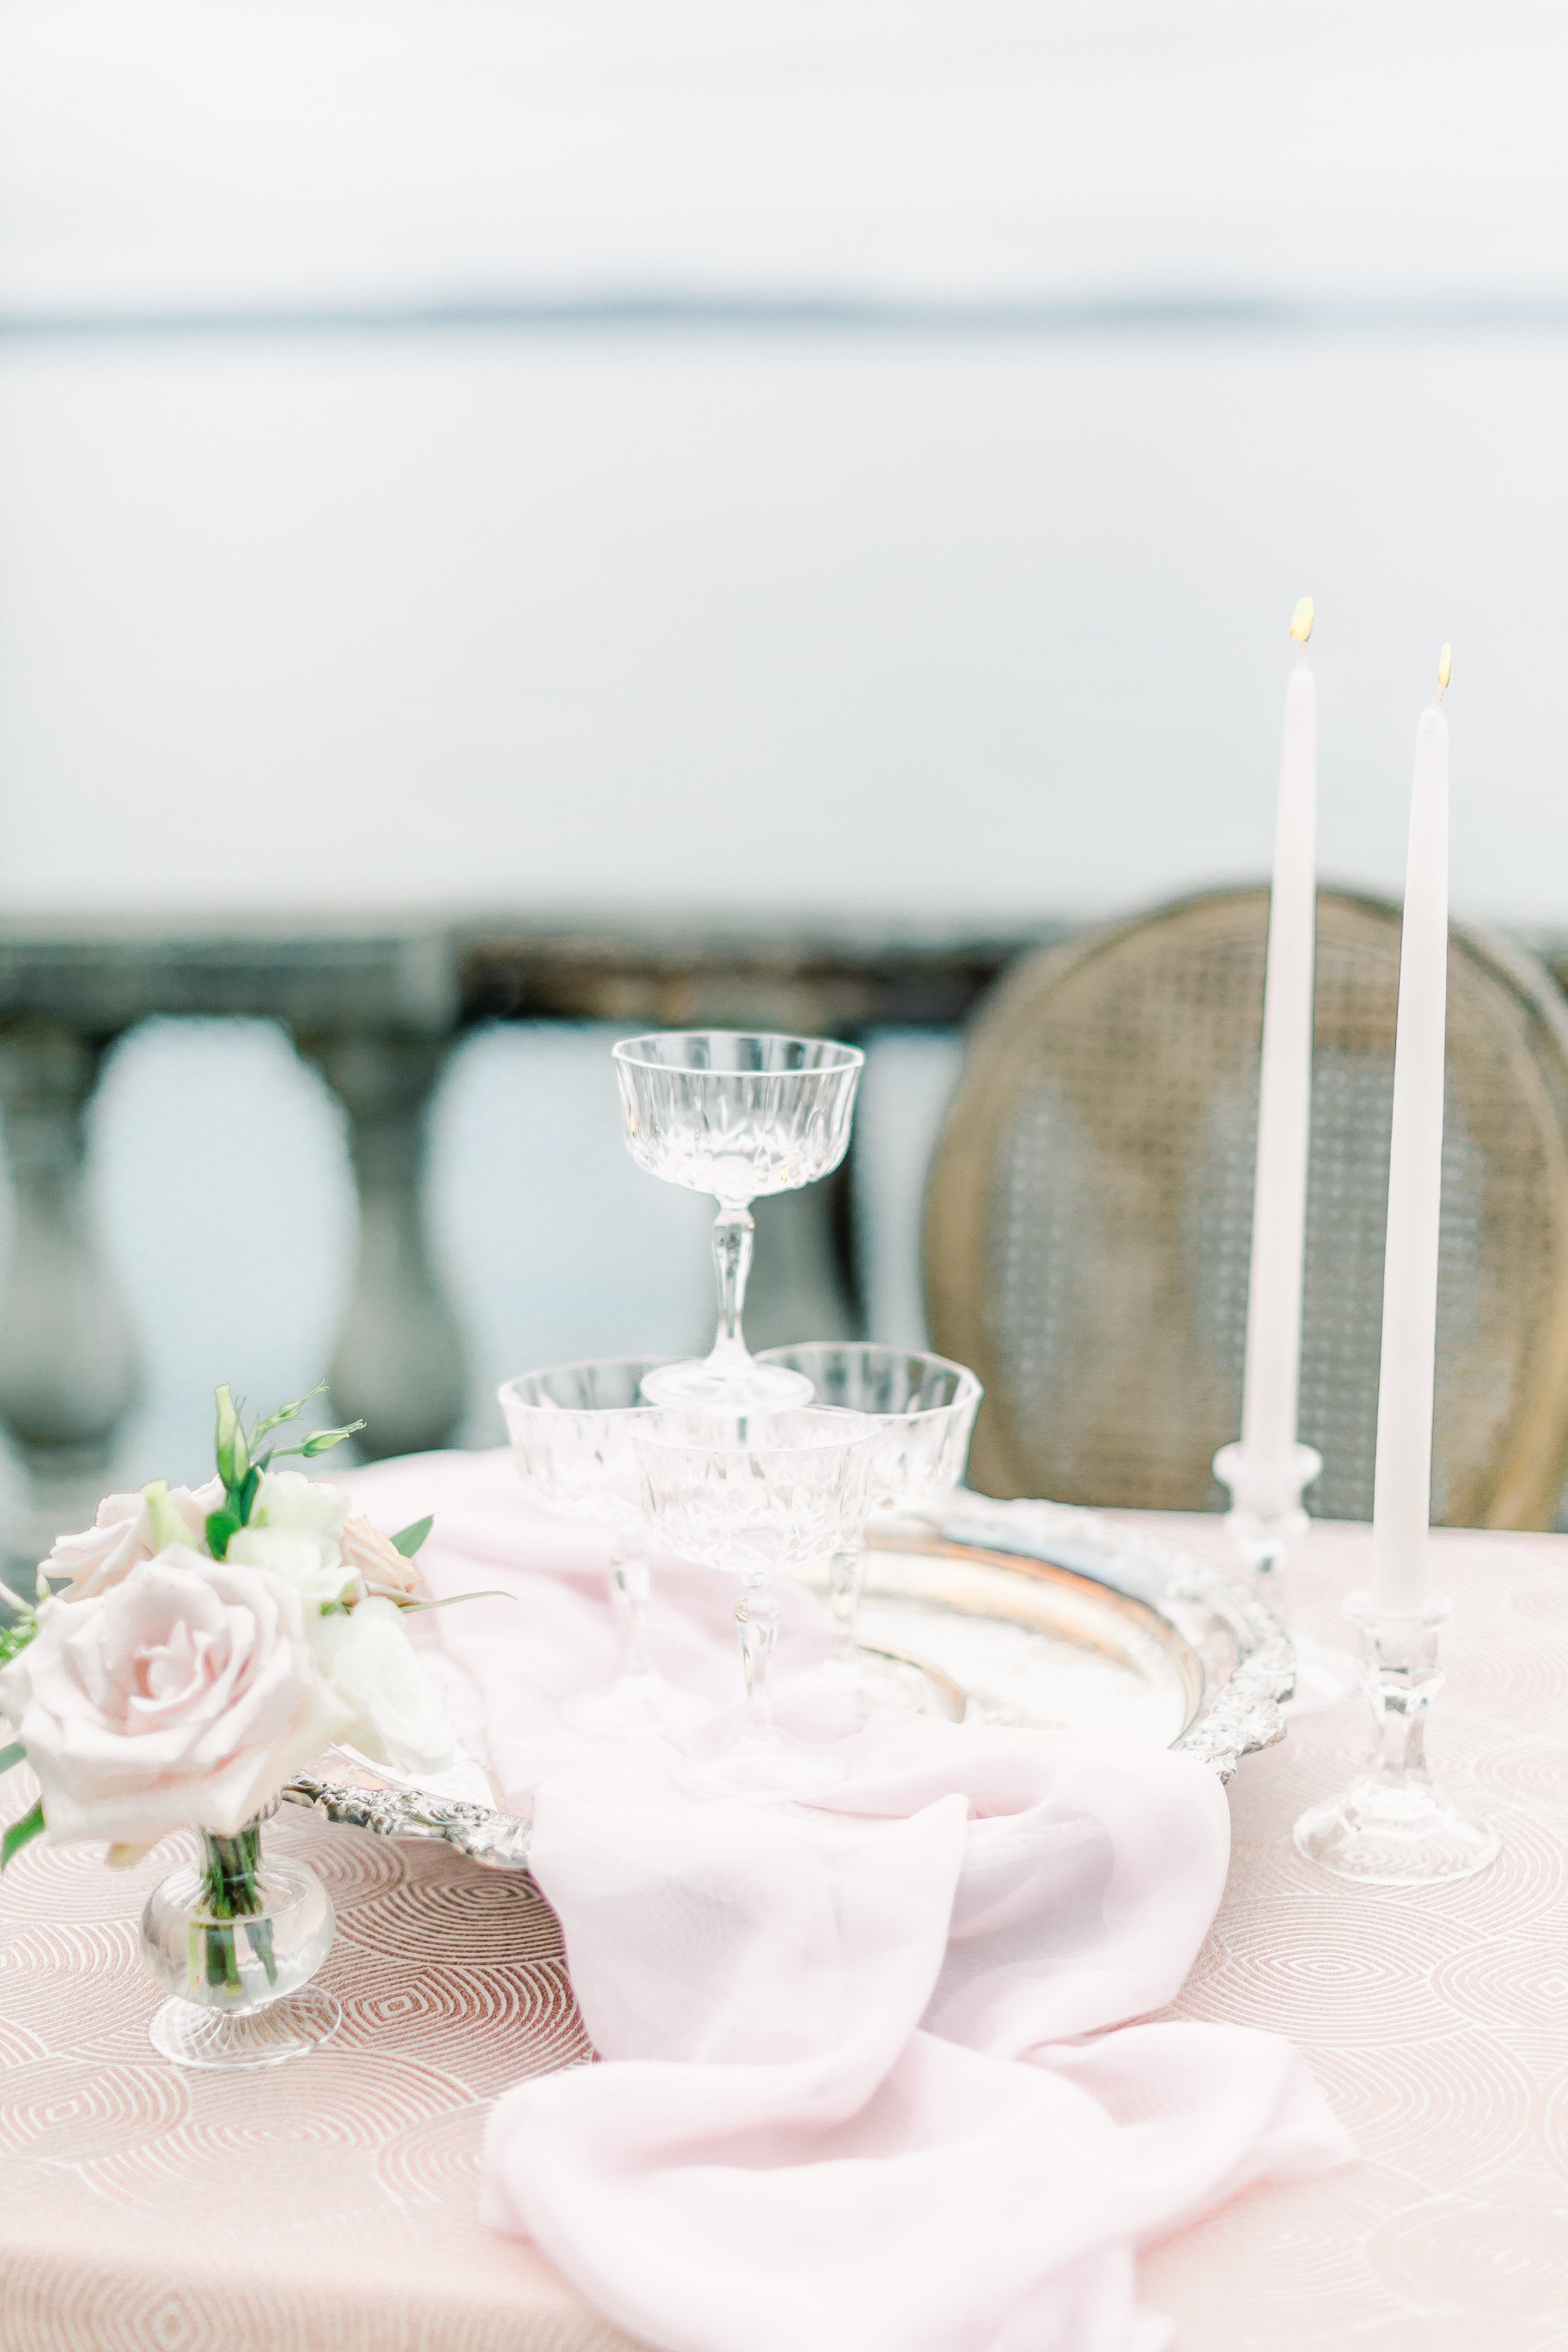 We want to be your Forever Planner - Our goal is to be your event planer, not just your wedding planner. We'll remember who your Aunt Vicky is or the flowers you had at your wedding a year later. We love to plan more than just weddings - baby showers, birthdays, etc. Our goal is to not only impress you as your Wedding Planner, but as you and your family's go-to Event Planner for all things fun!